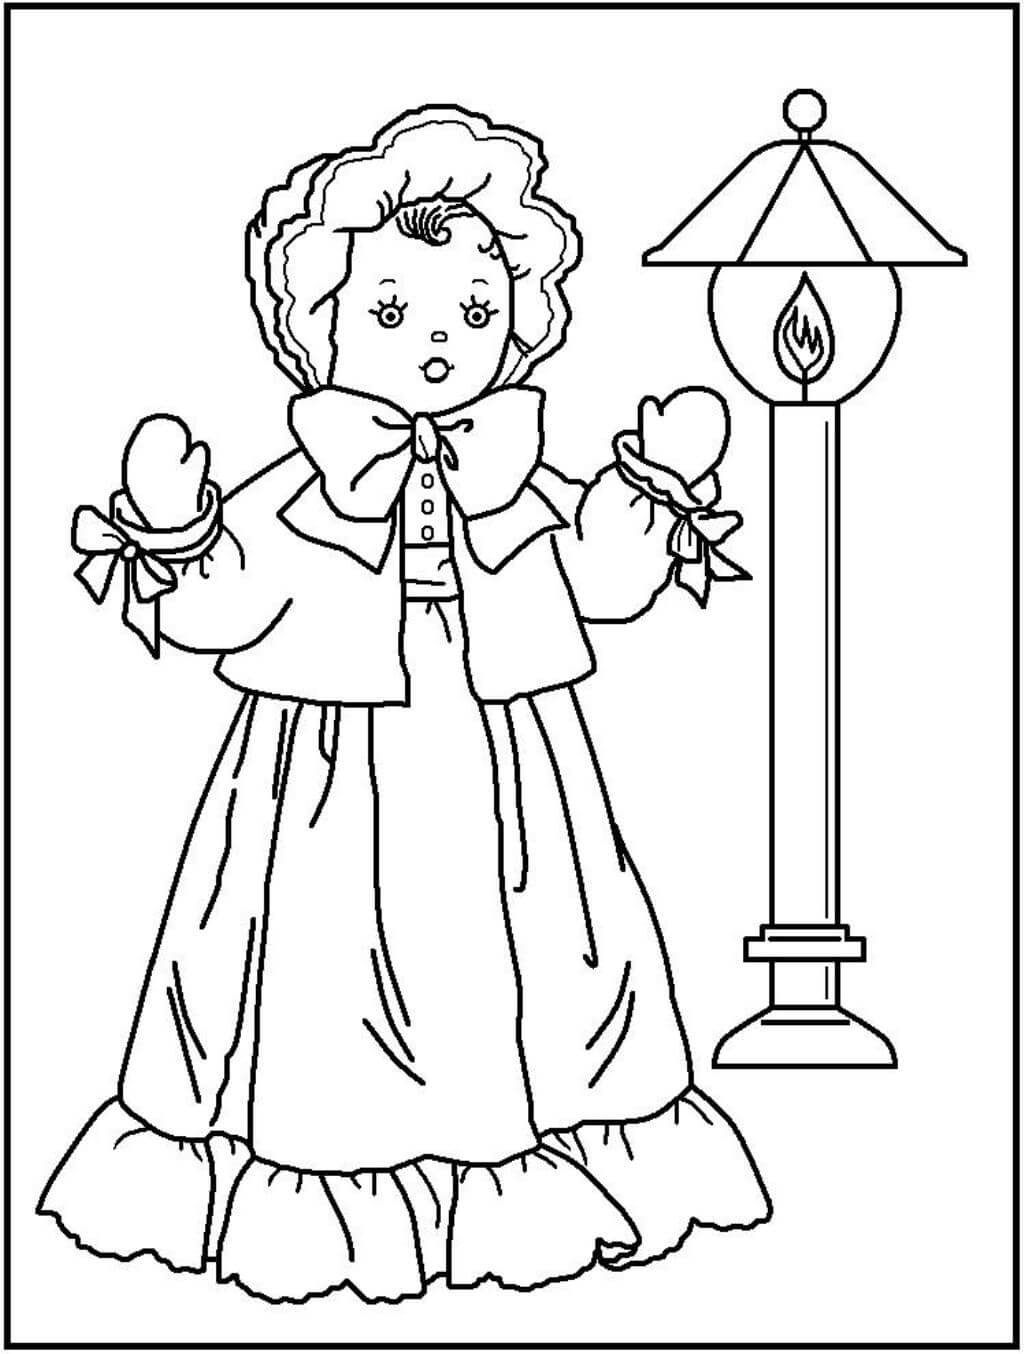 american girl doll coloring pages to print american girl doll coloring pages free printable american print american coloring to pages girl doll